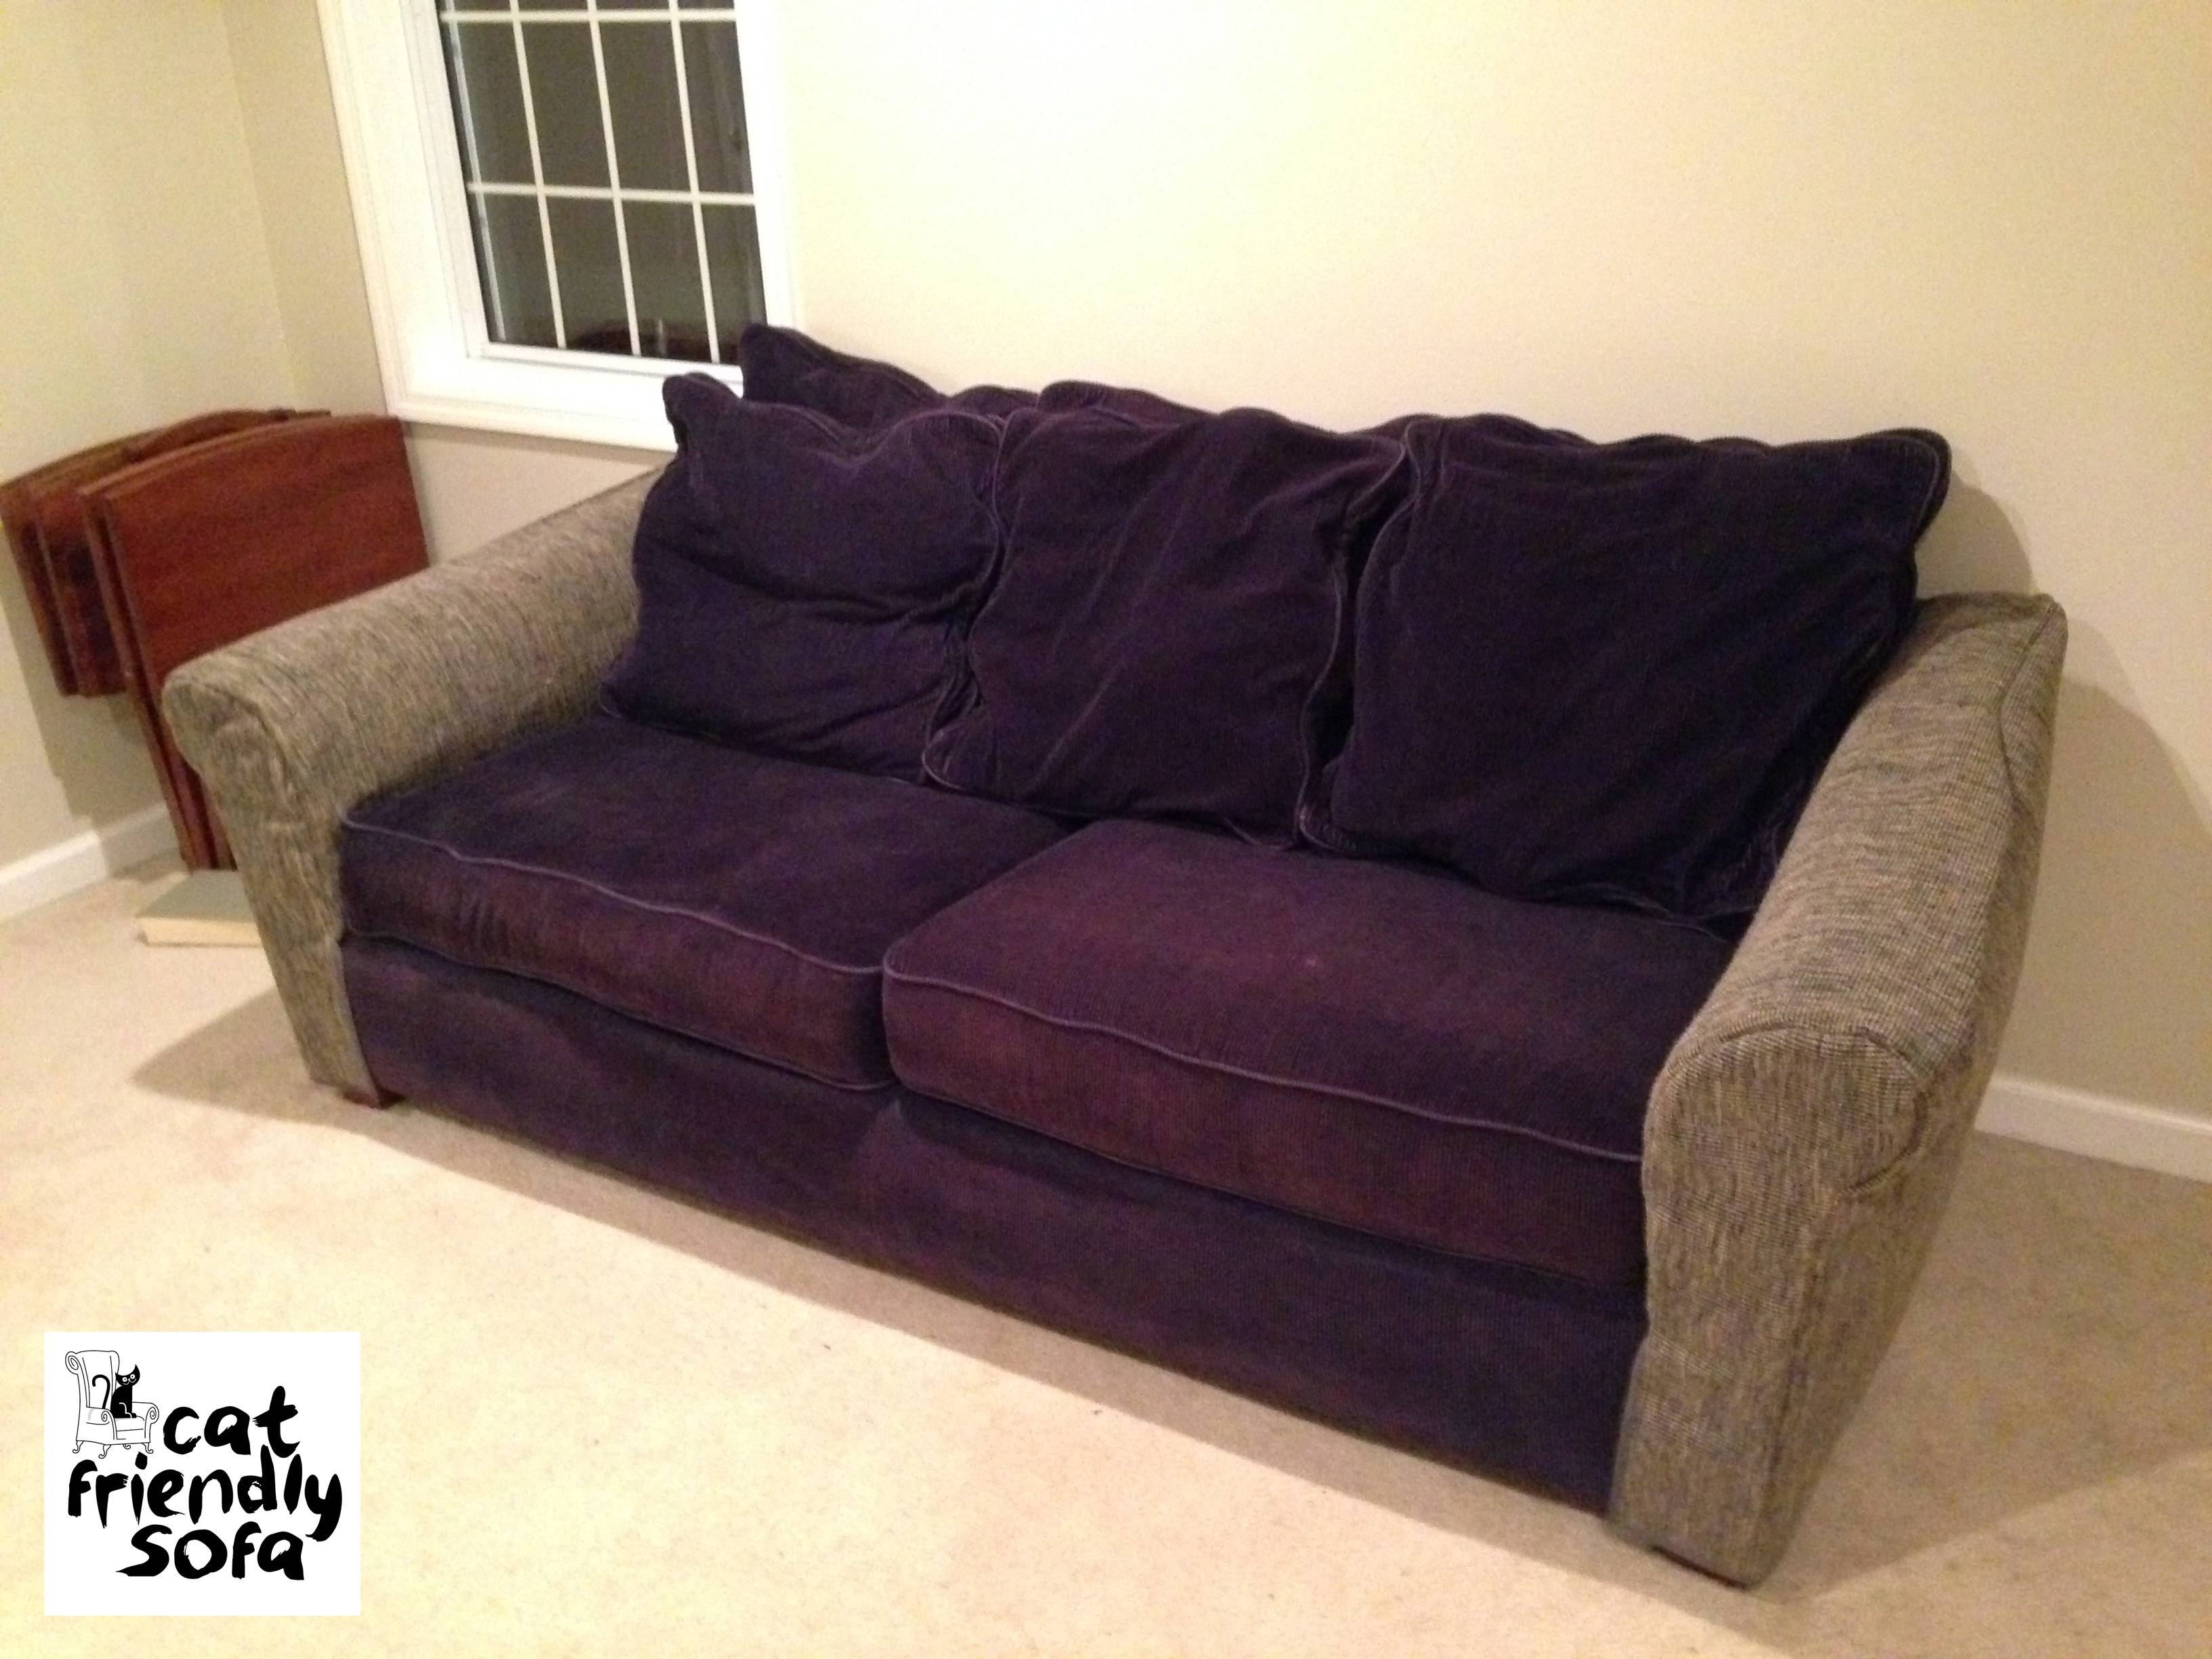 Tailored Slipcovers - Cat Friendly Sofa | Cat Friendly Sofa - Part 2 for Pet Proof Sofa Covers (Image 10 of 15)